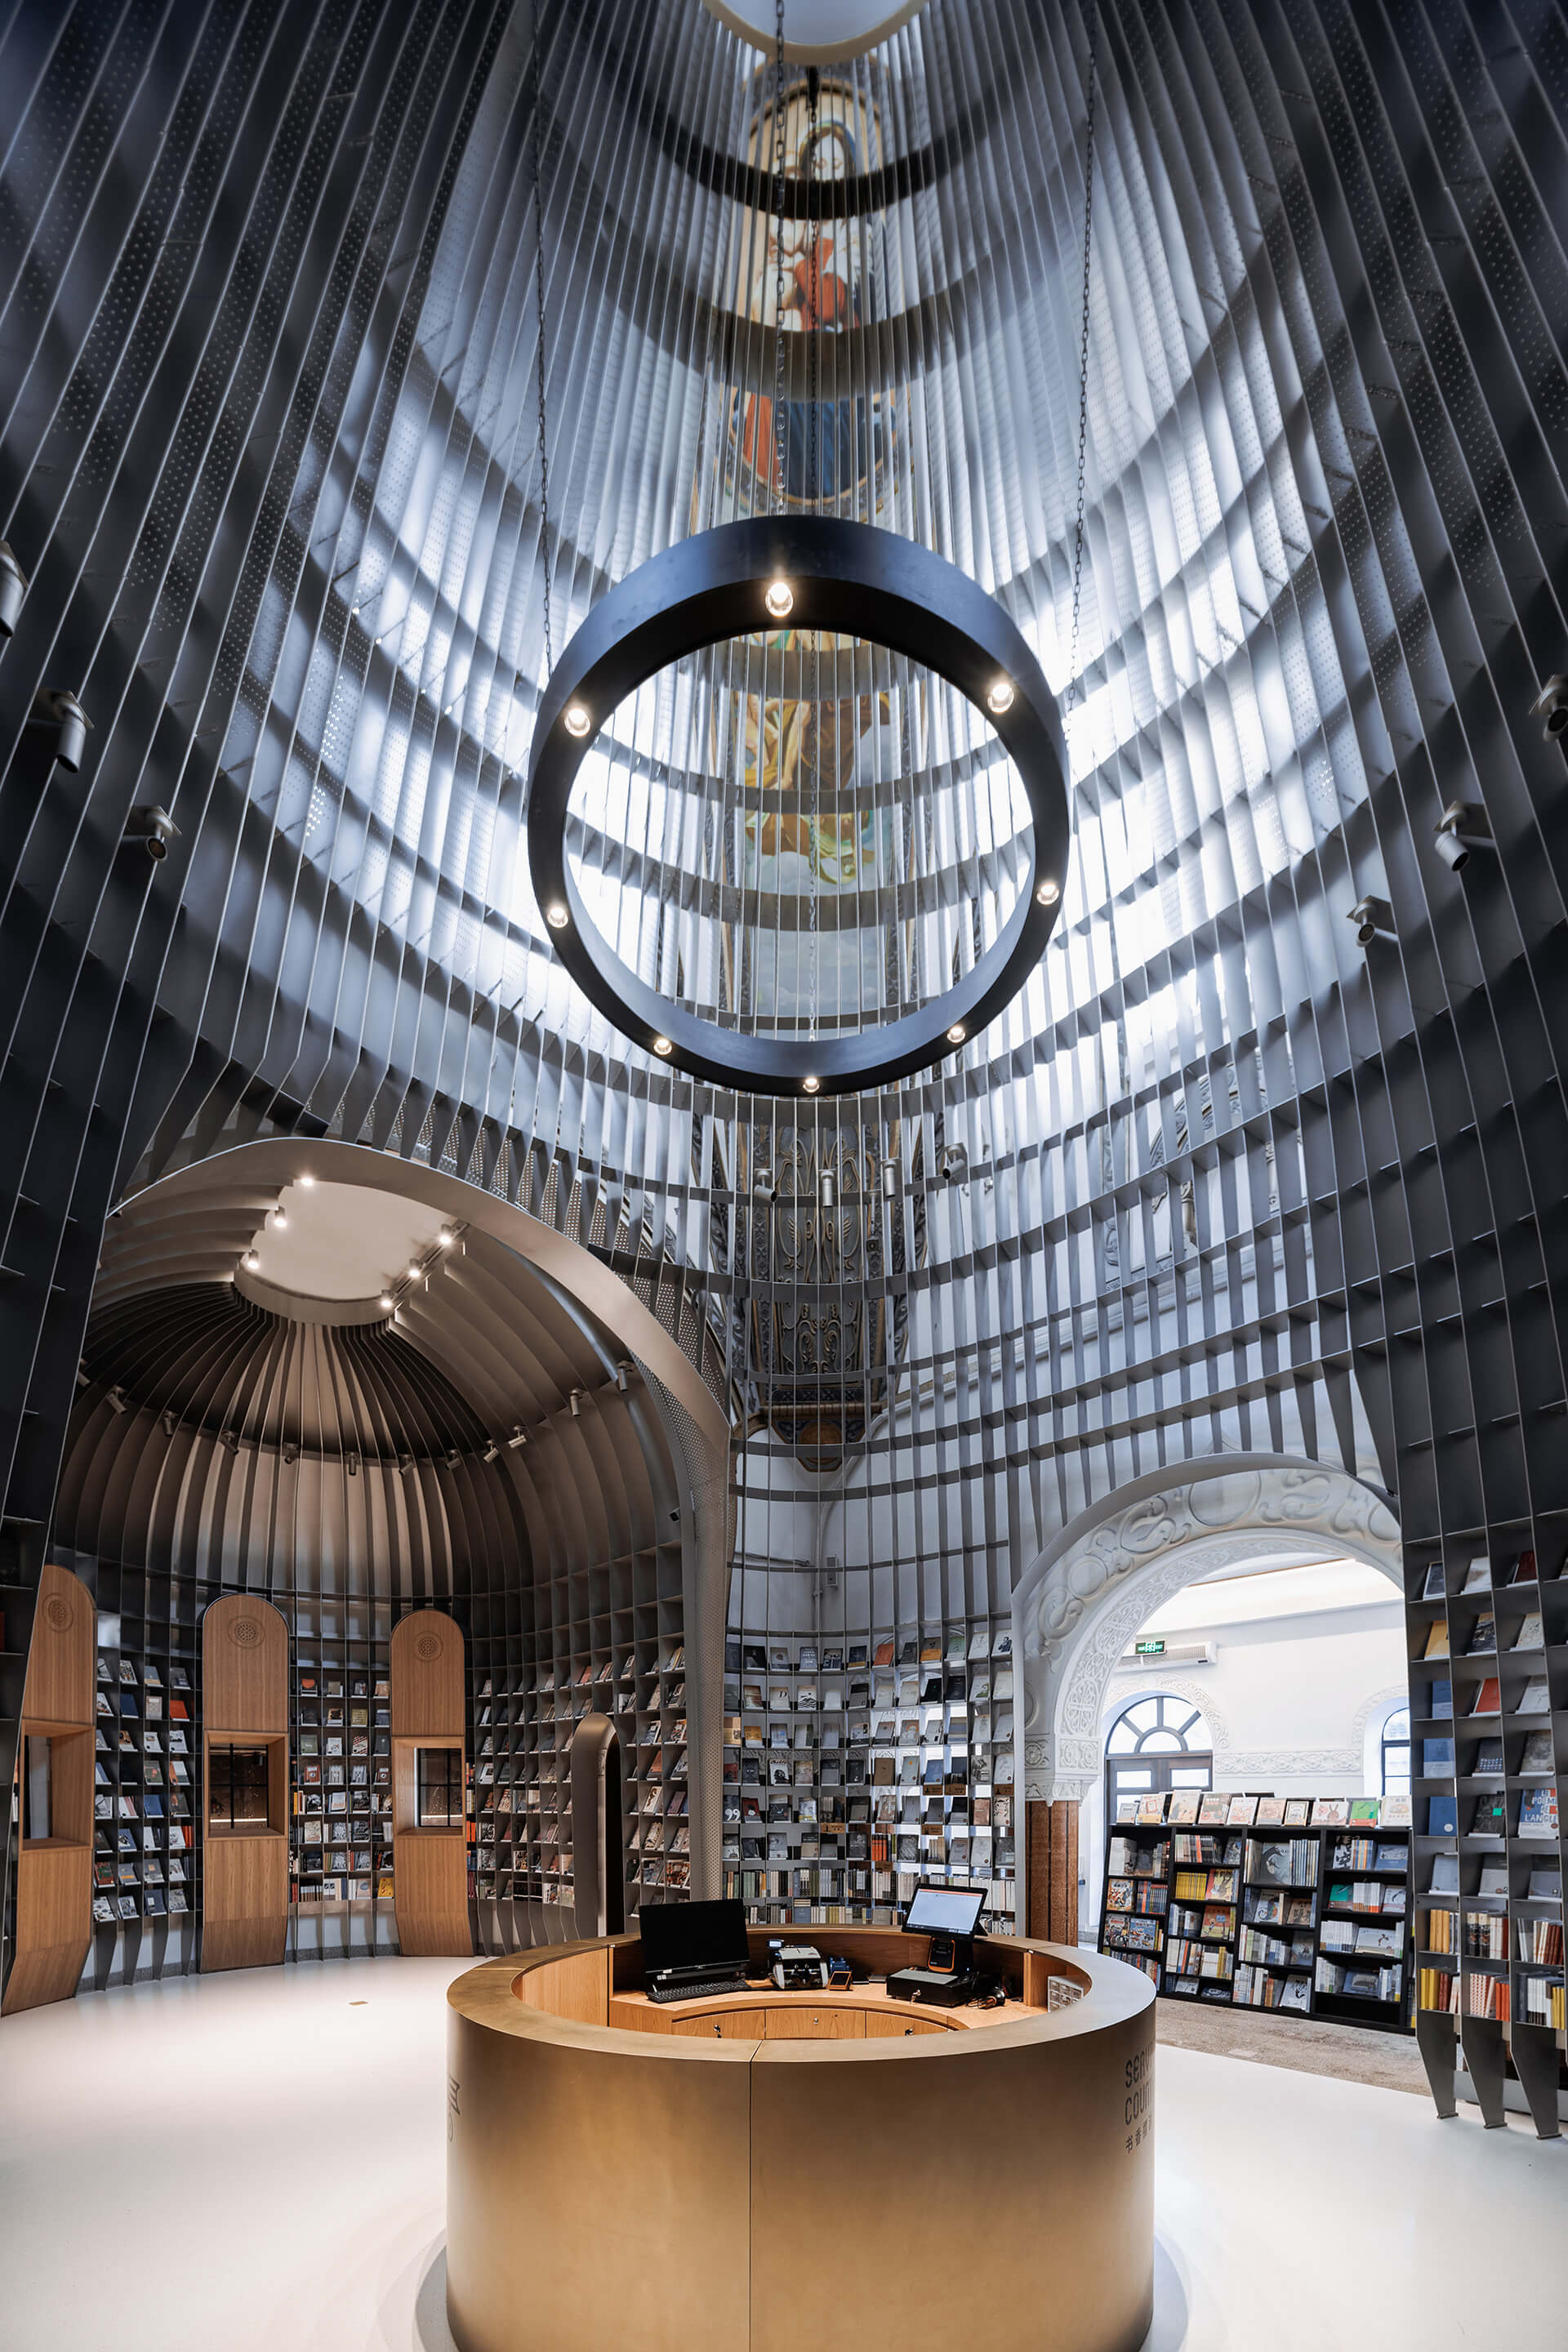 Faint traces of the old frescoes on the wall are revealed through the gridded steel framework | Sinan Books Poetry Store by Wutopia Lab | STIRworld